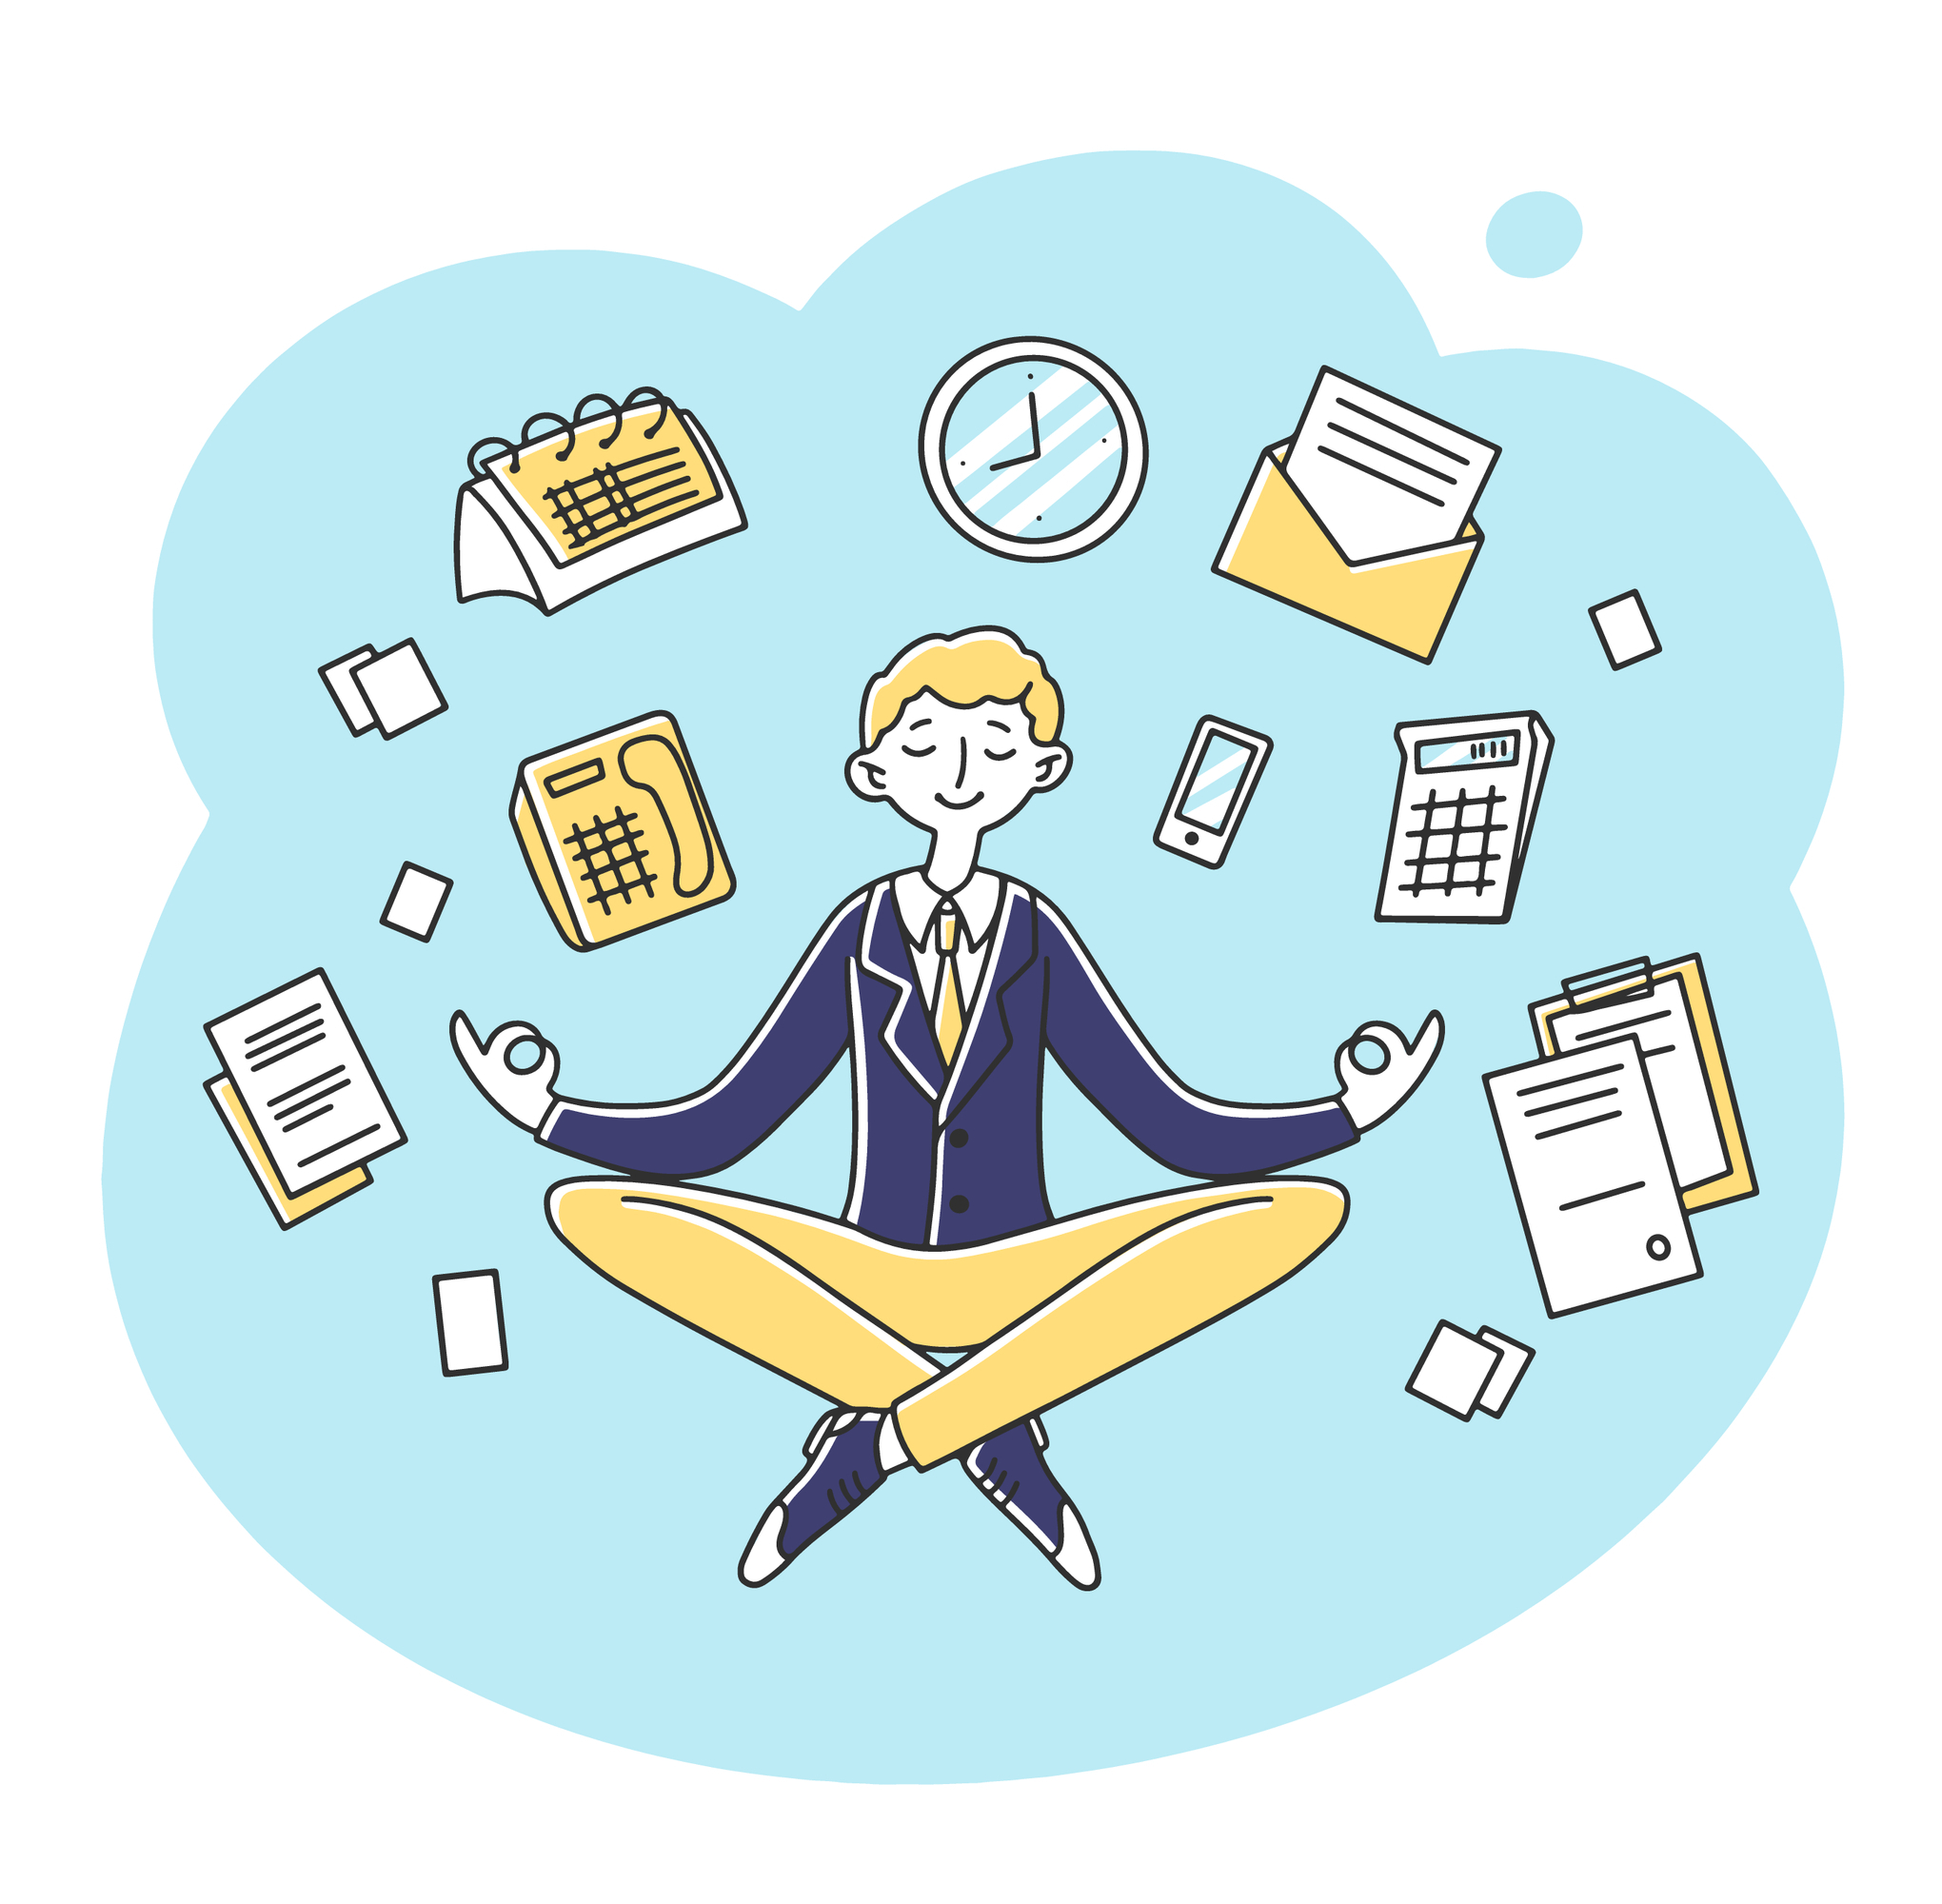 10 Ways the Connected Workplace Creates Zen